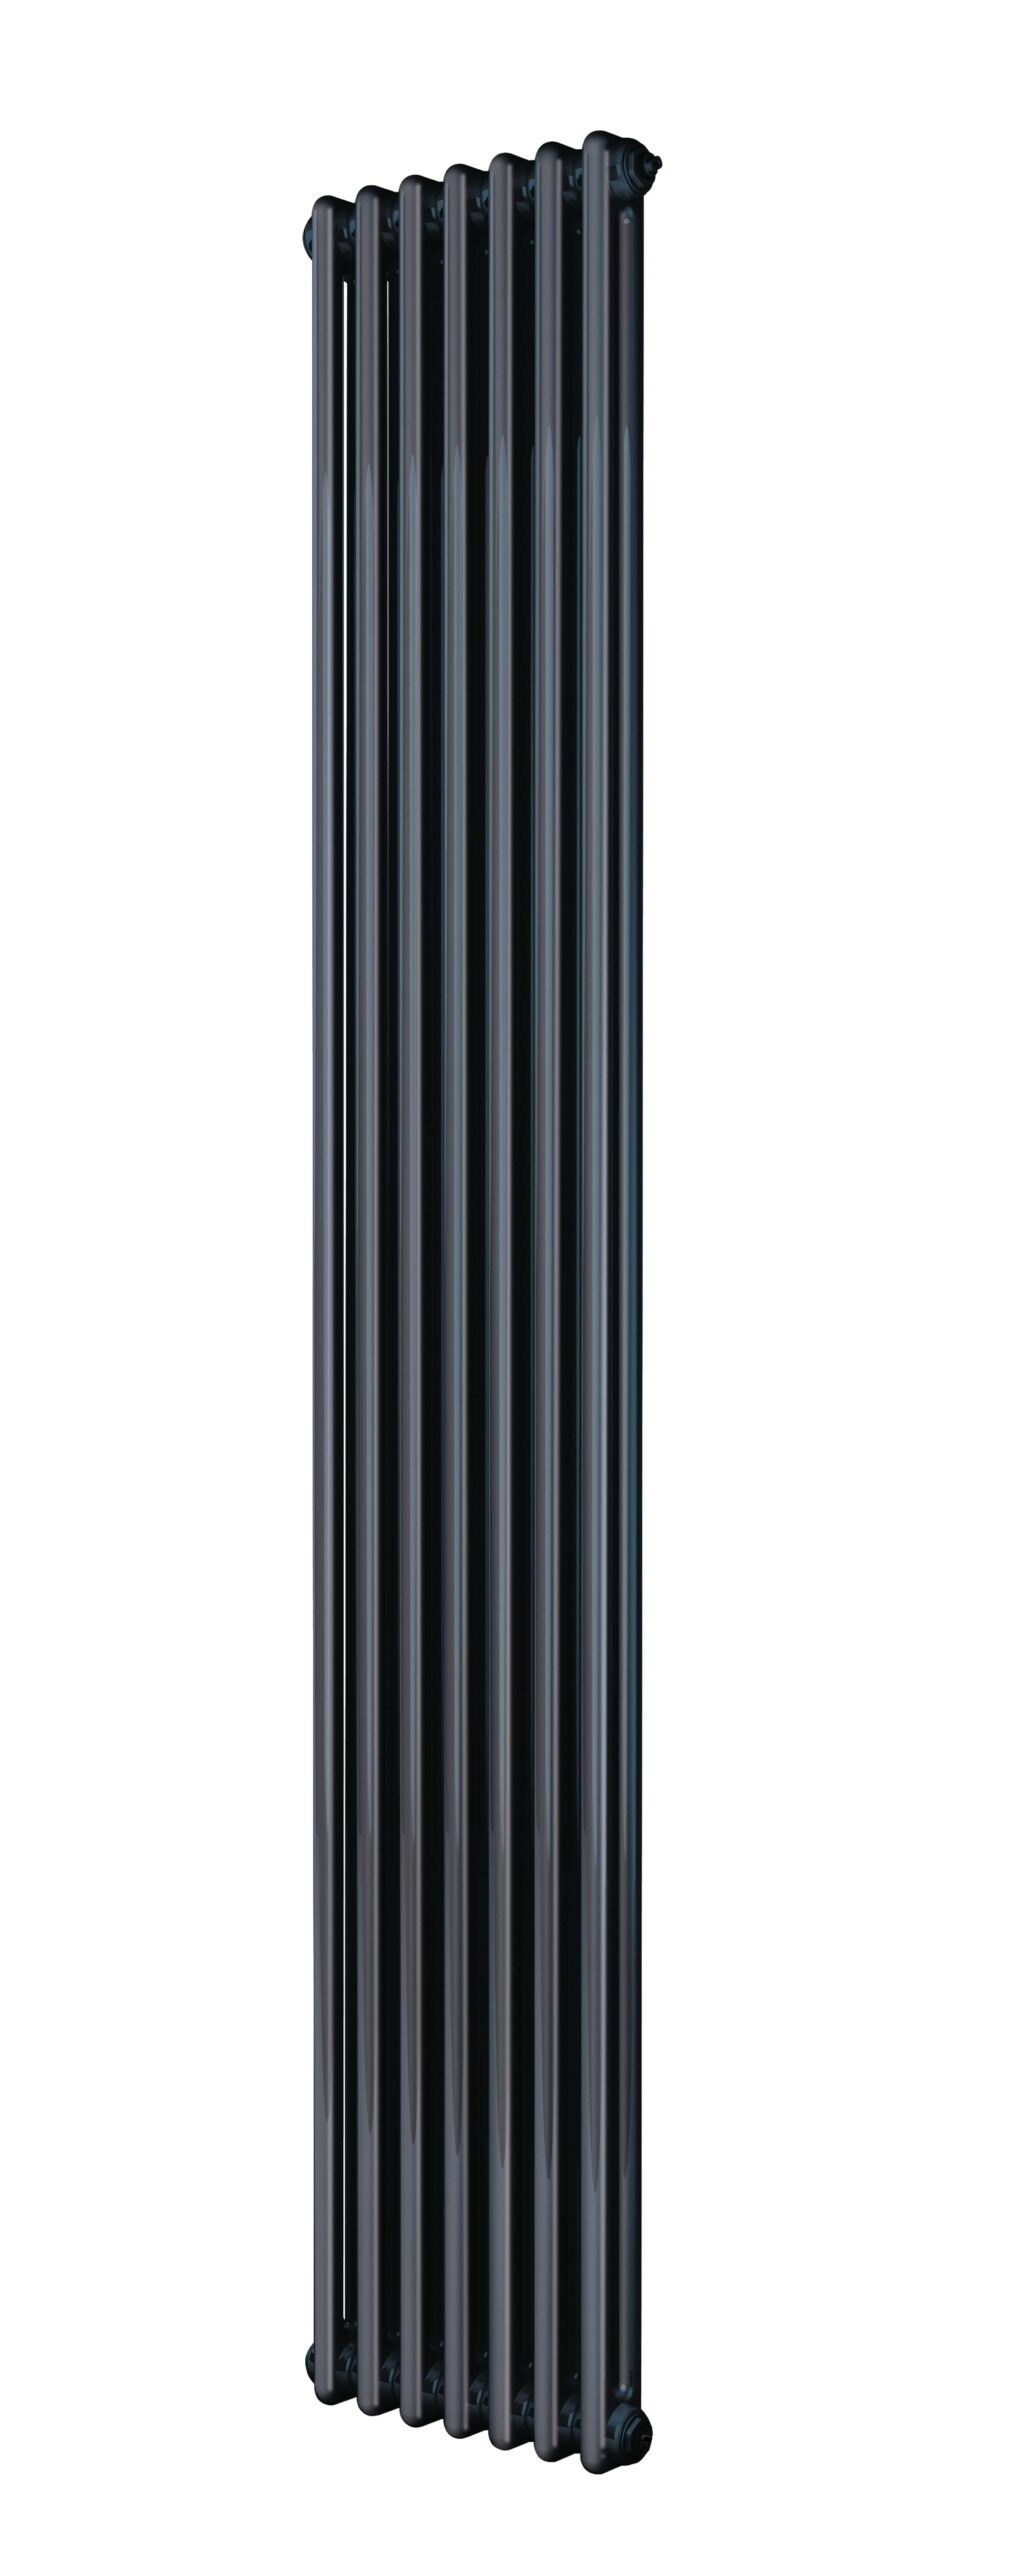 softline column concept cut out